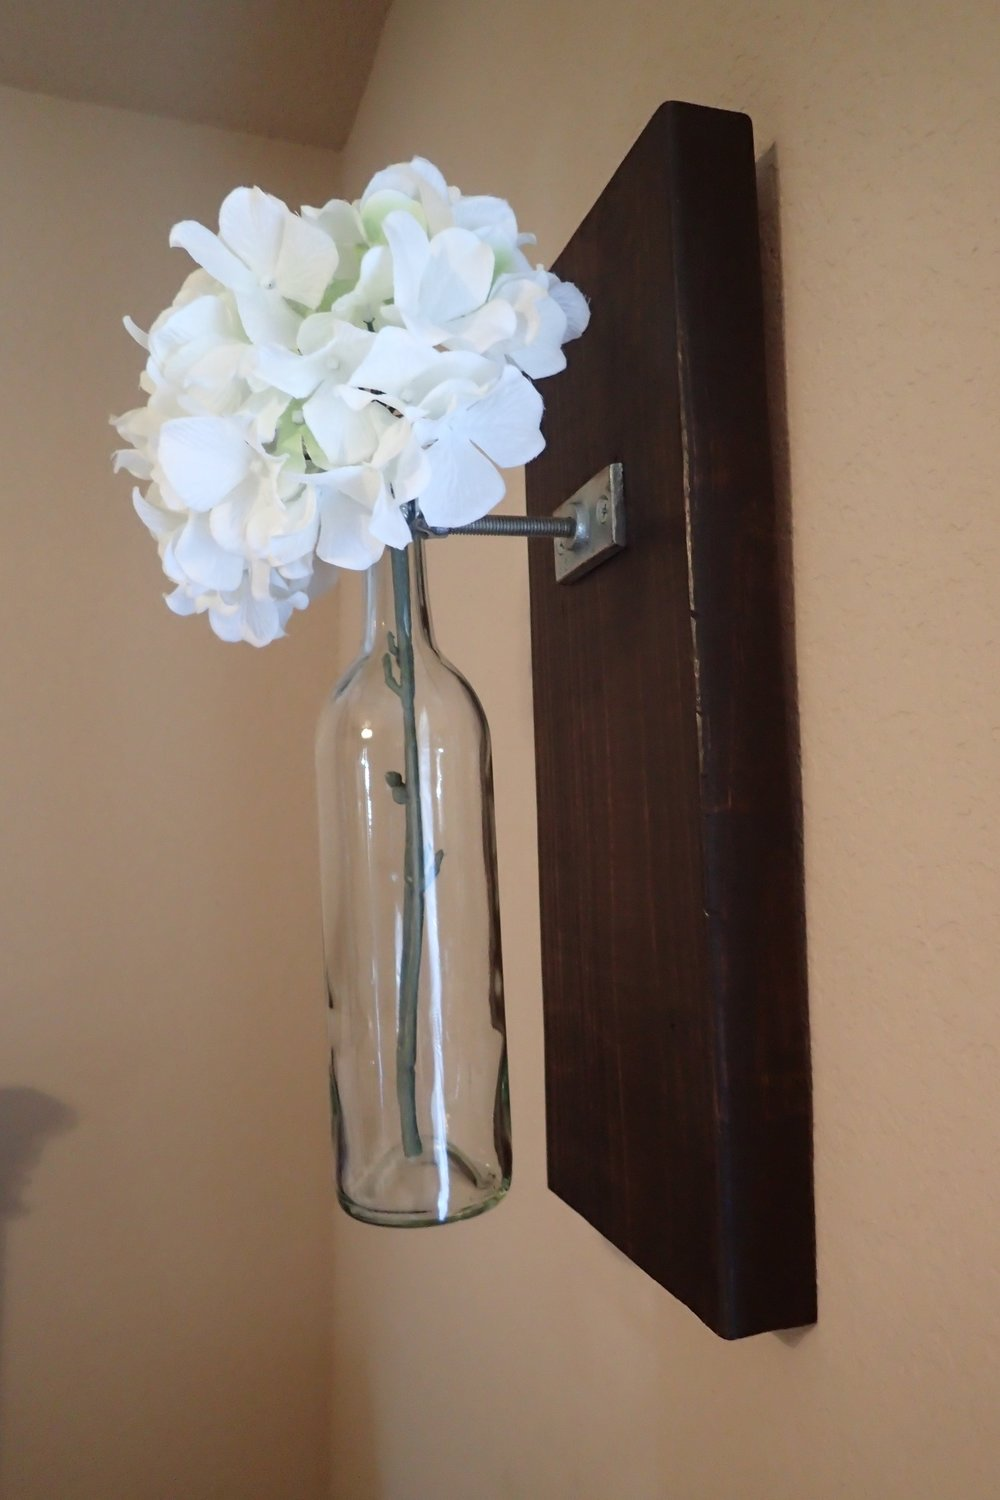 Wall decor nowlin designs wine bottle wall vase 25 this wall vase includes a glass bottle secured by sturdy reviewsmspy